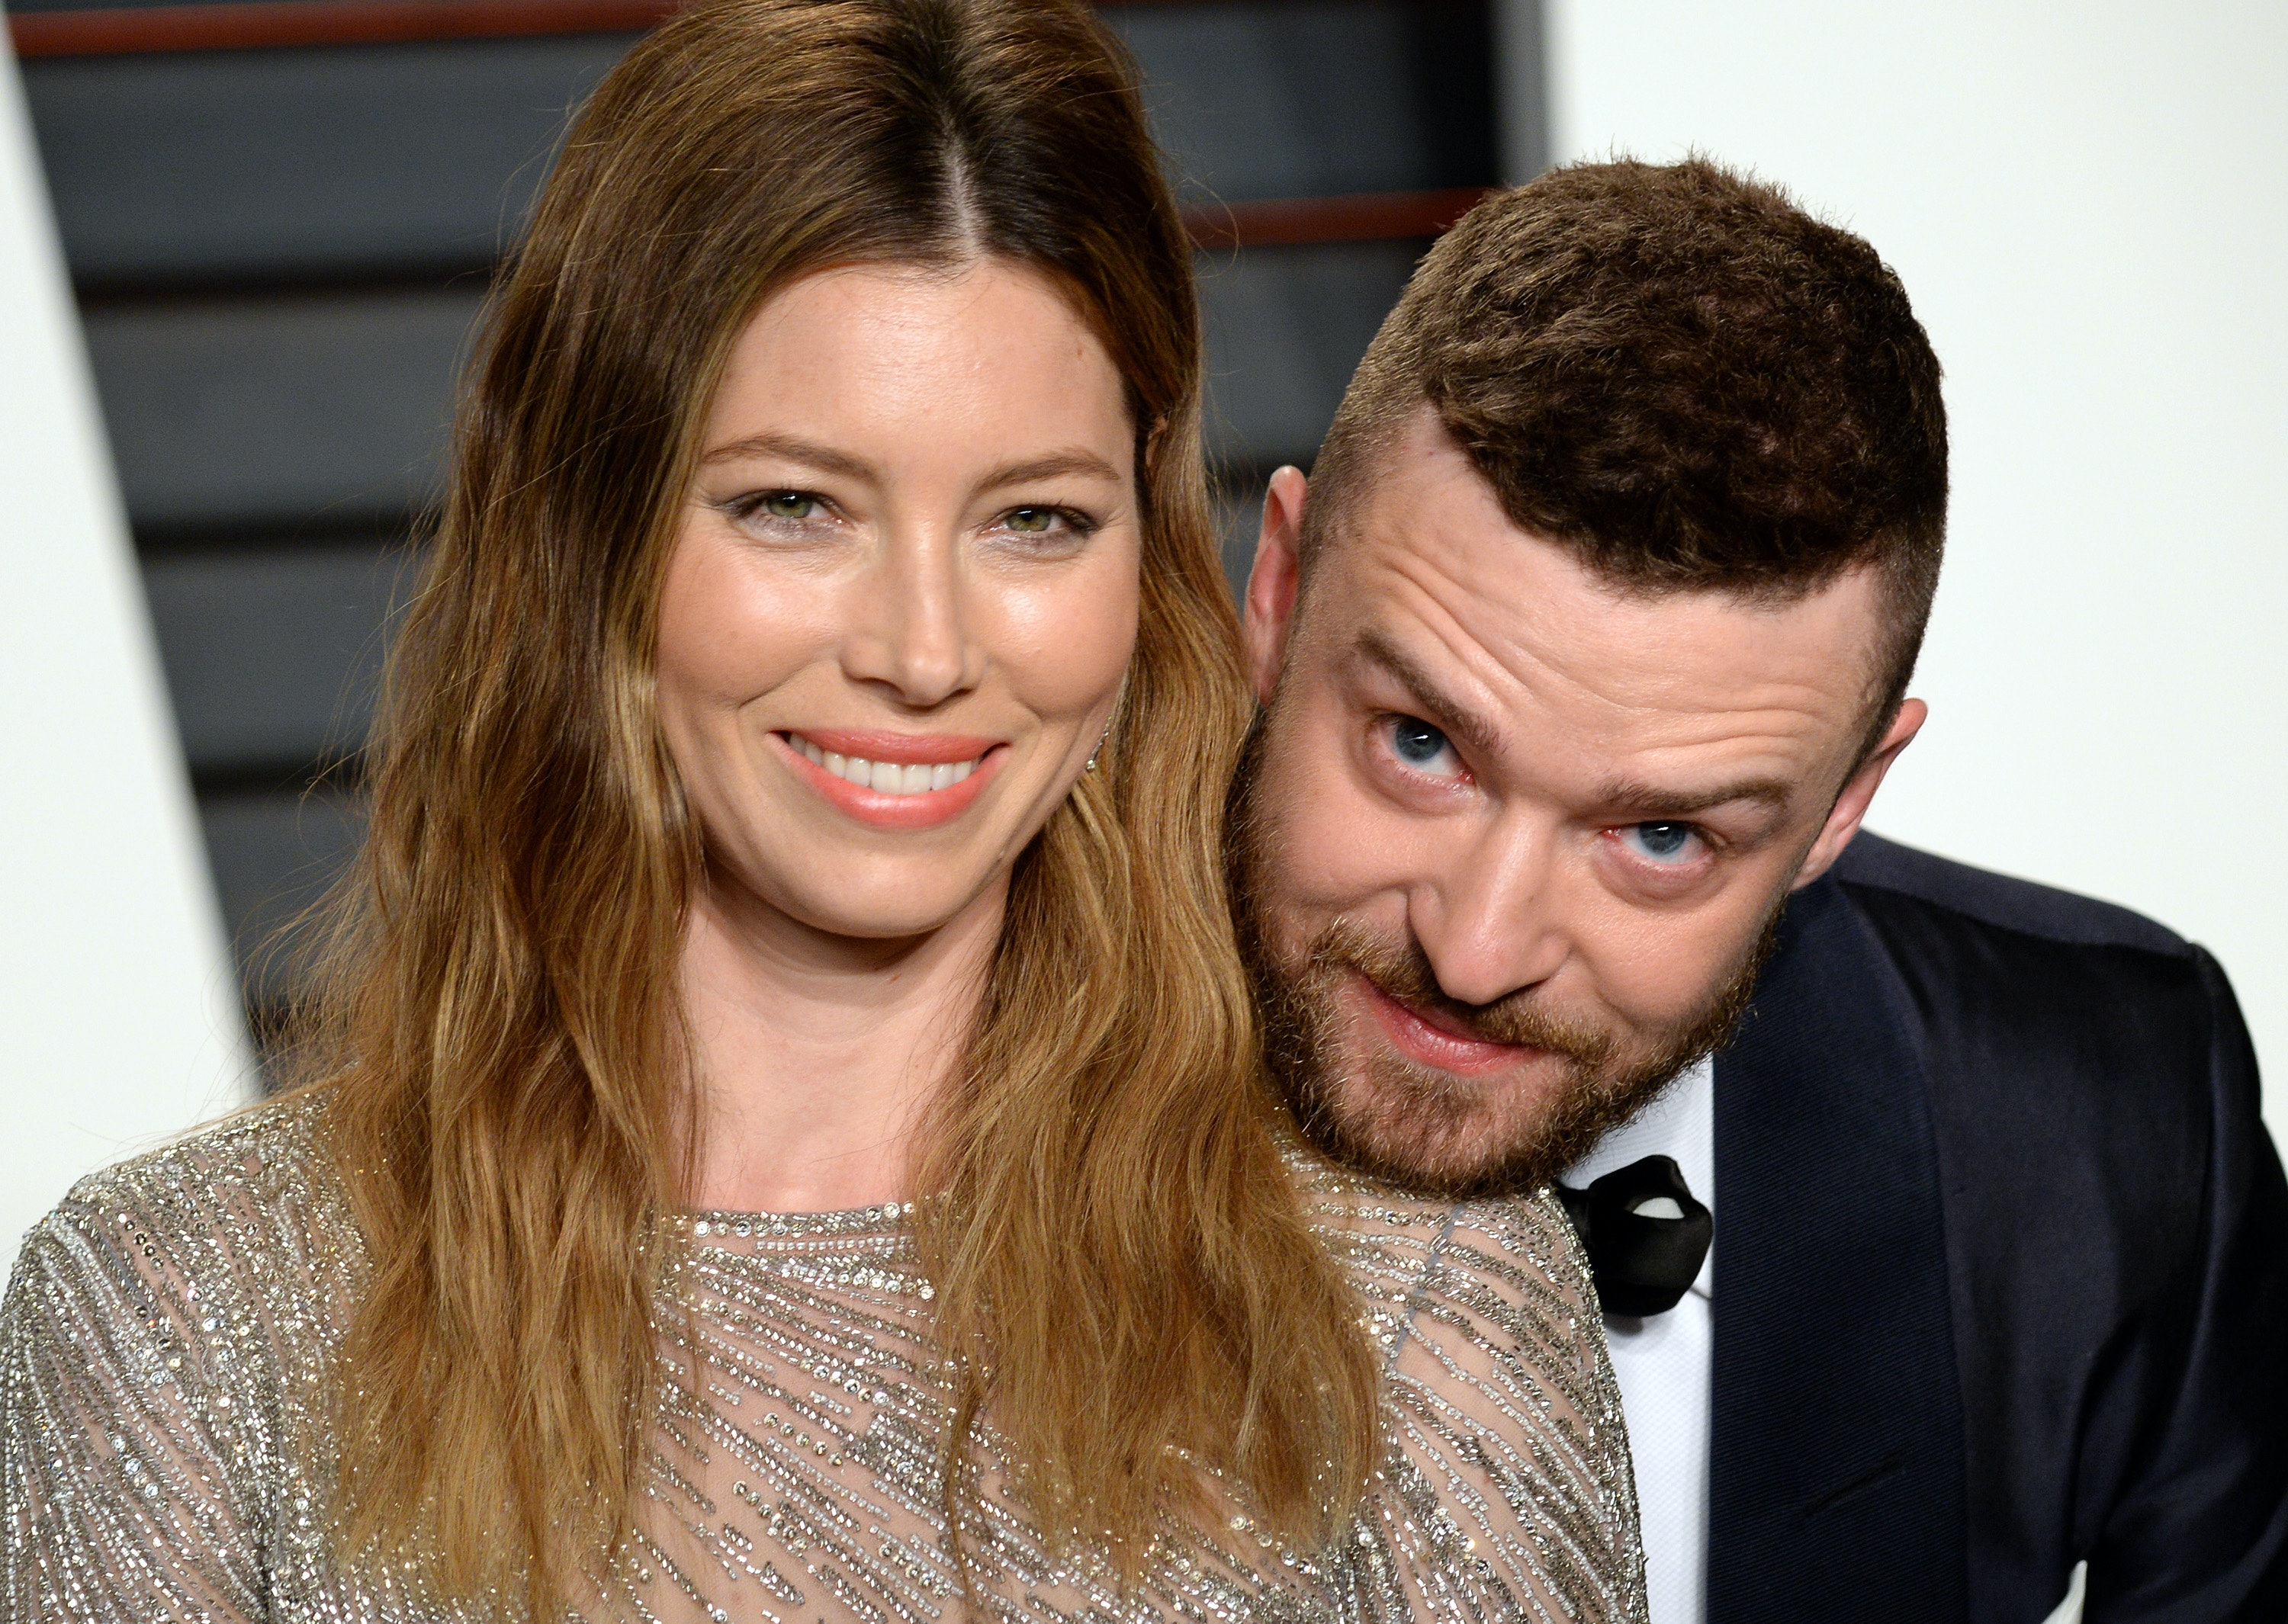 Photos Of Justin Timberlake U0026 Jessica Biel At The Super Bowl Are So  Incredibly Sweet